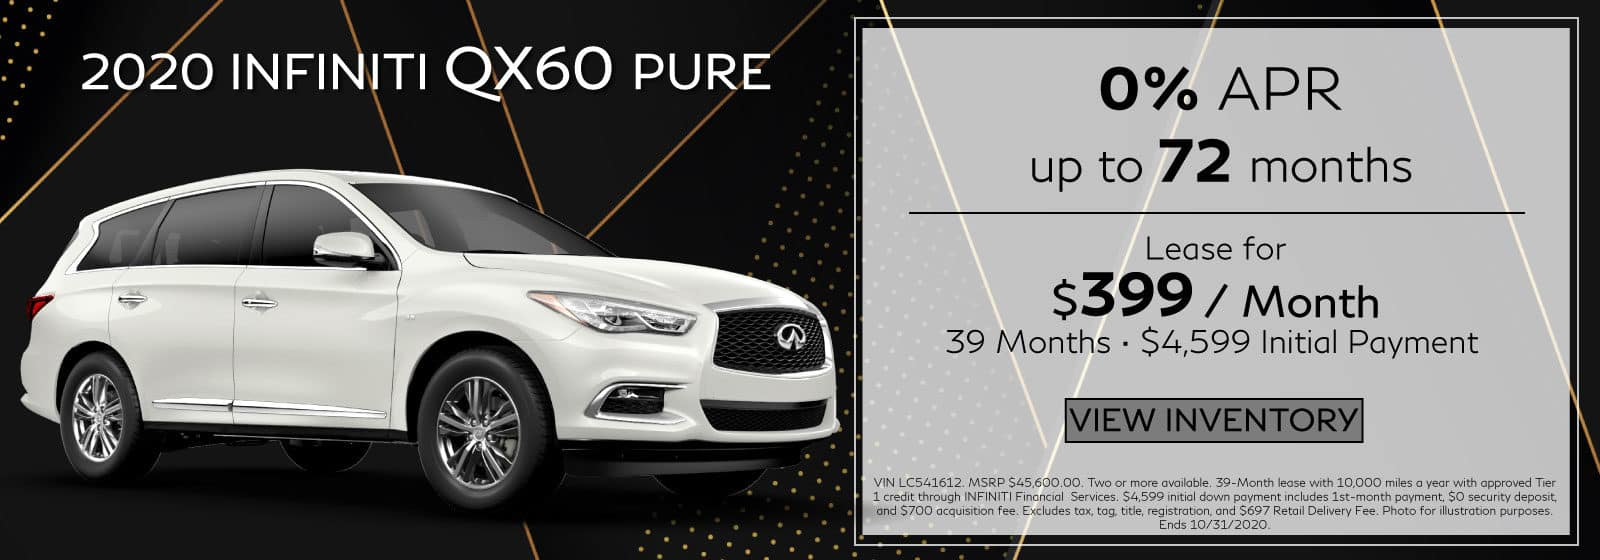 2020 QX60 PURE. $399 a month for 39 months. $4,599 initial payment. OR 0% APR for 72 months . White QX60 on black abstract background. View Inventory button.